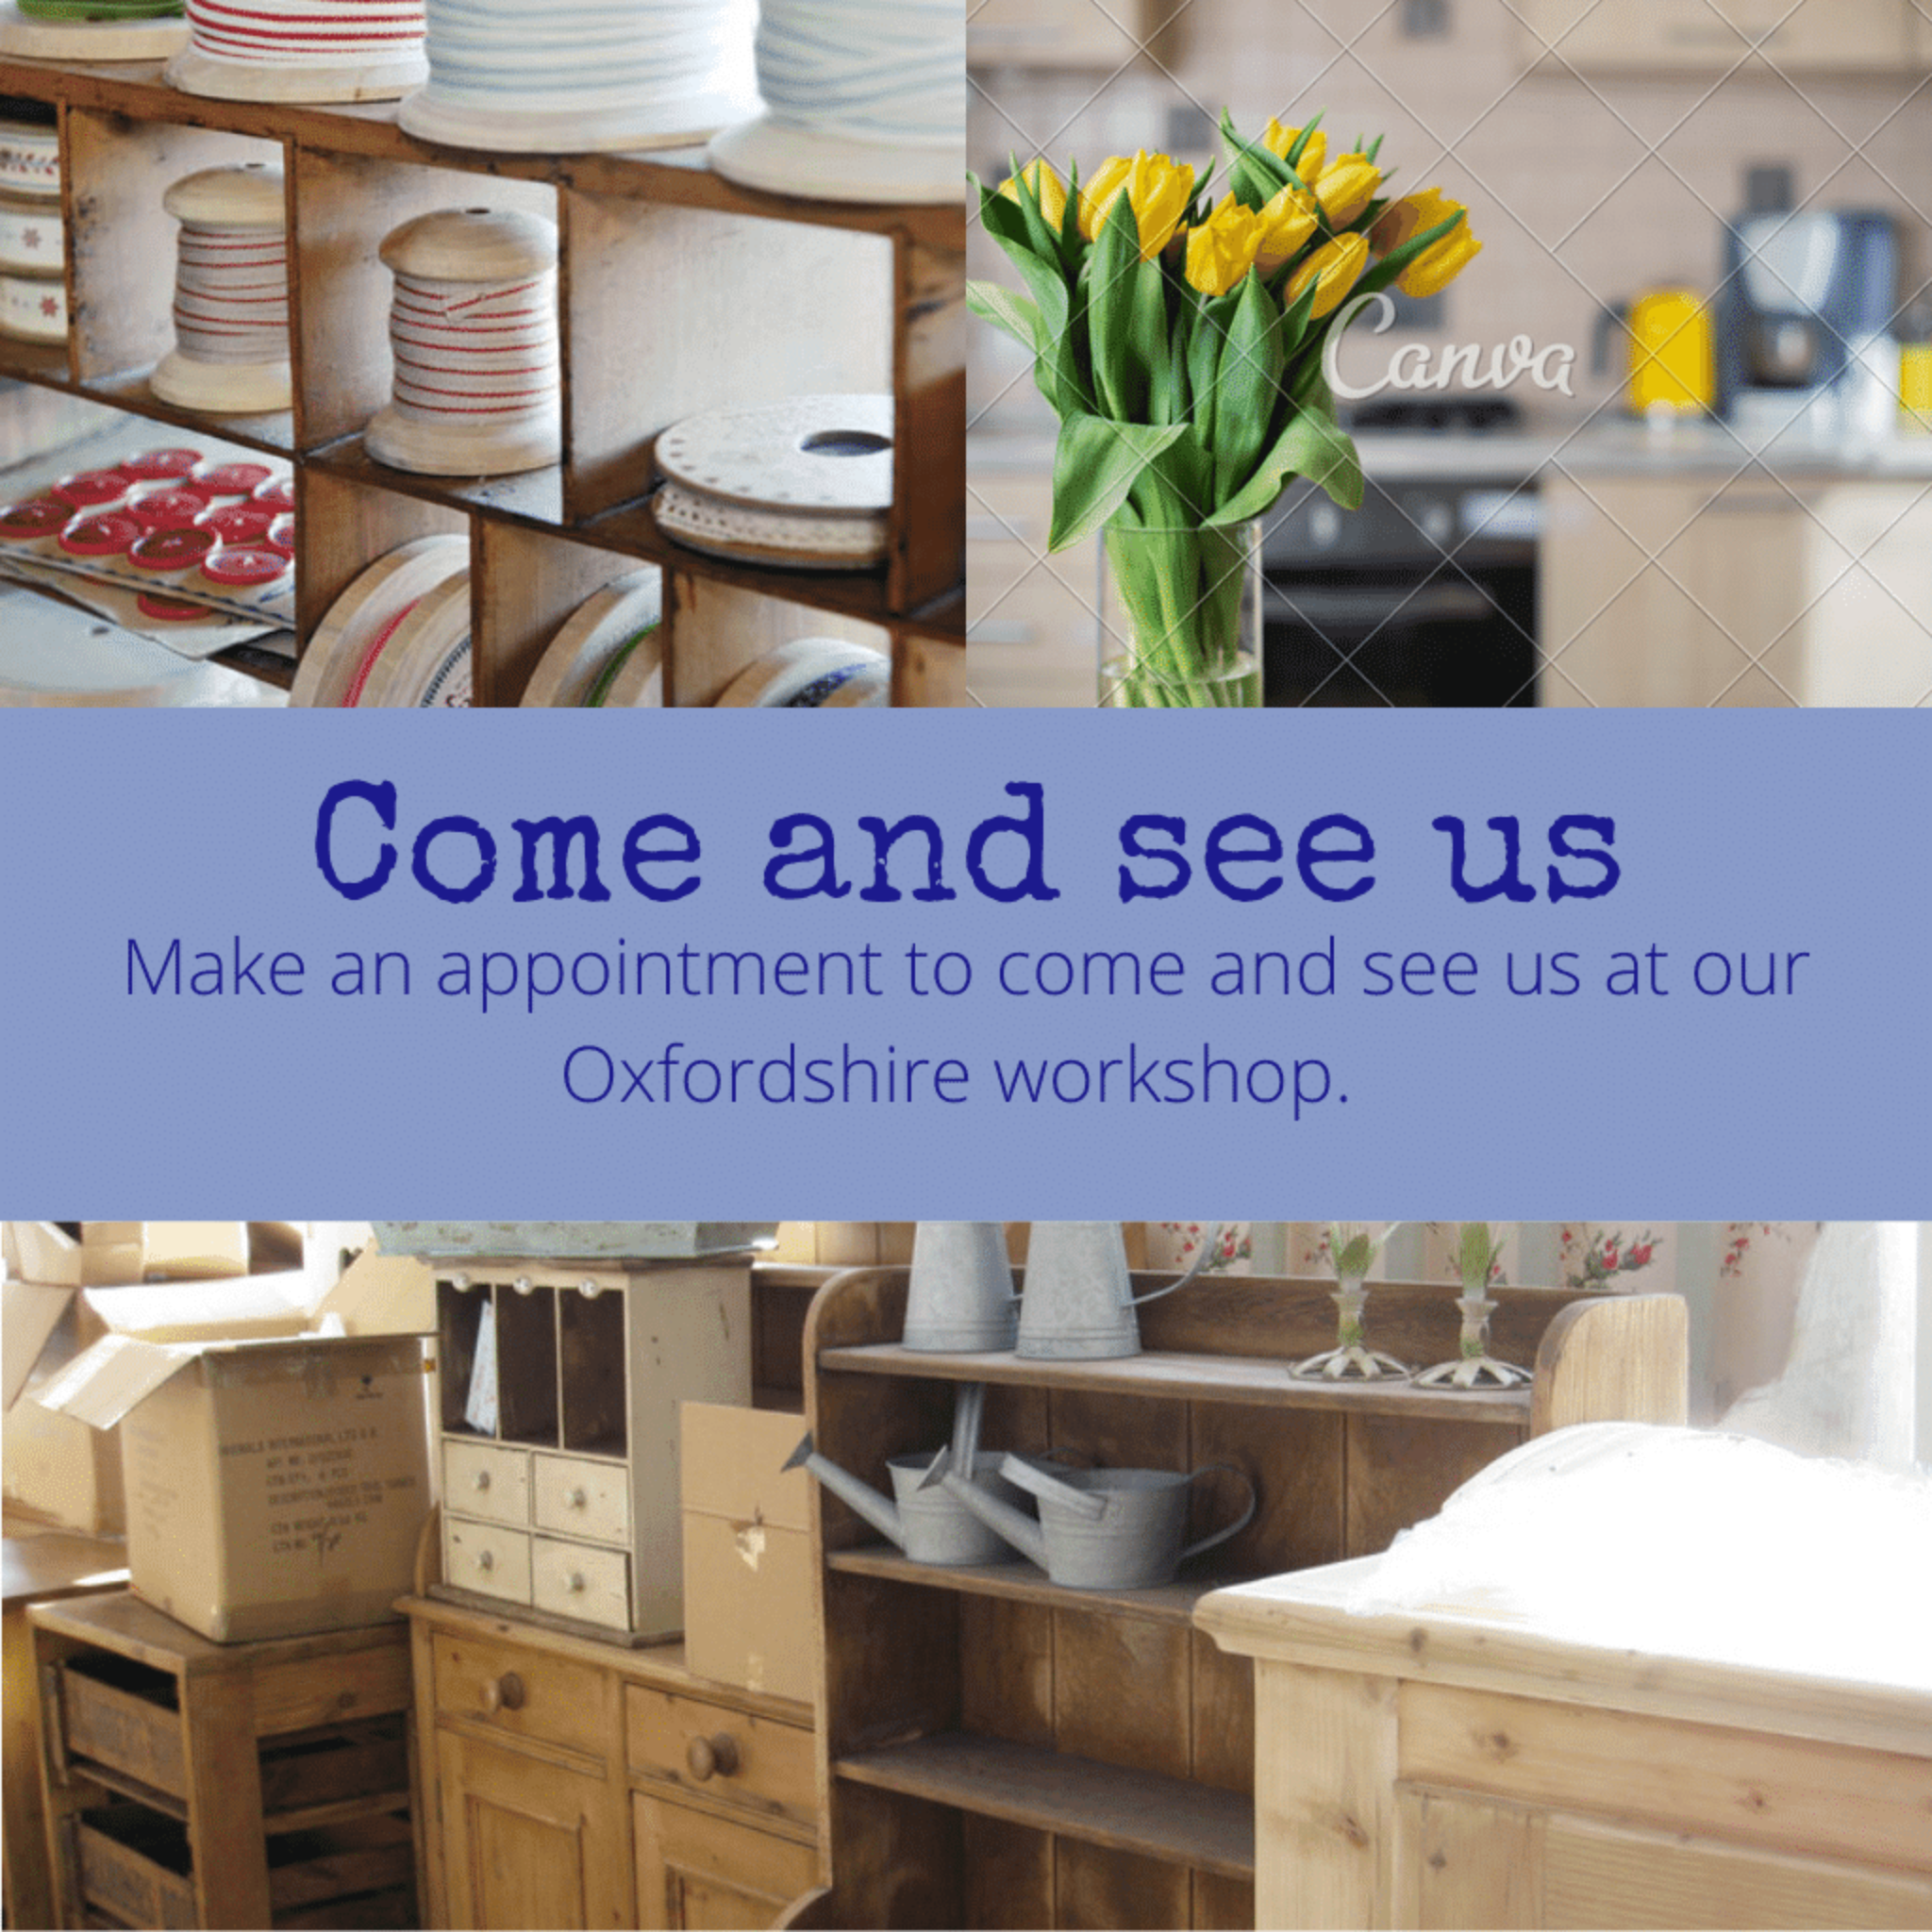 Come and see us at out workshop